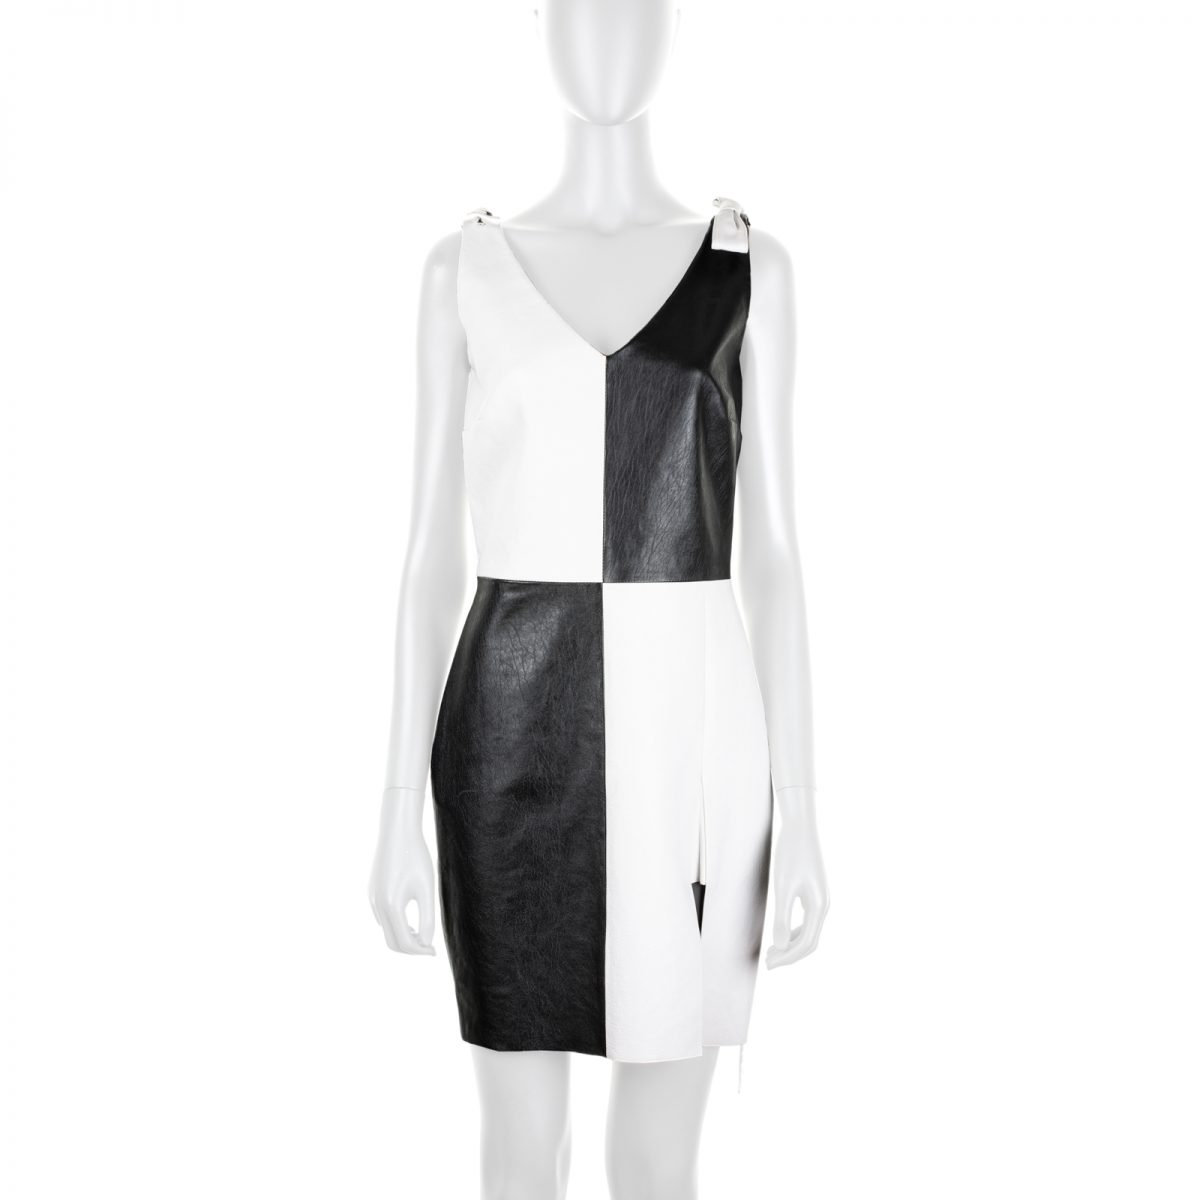 c6d6b5c4270 Checked Leather Dress with Bows by Saint Laurent - Le Dressing Monaco